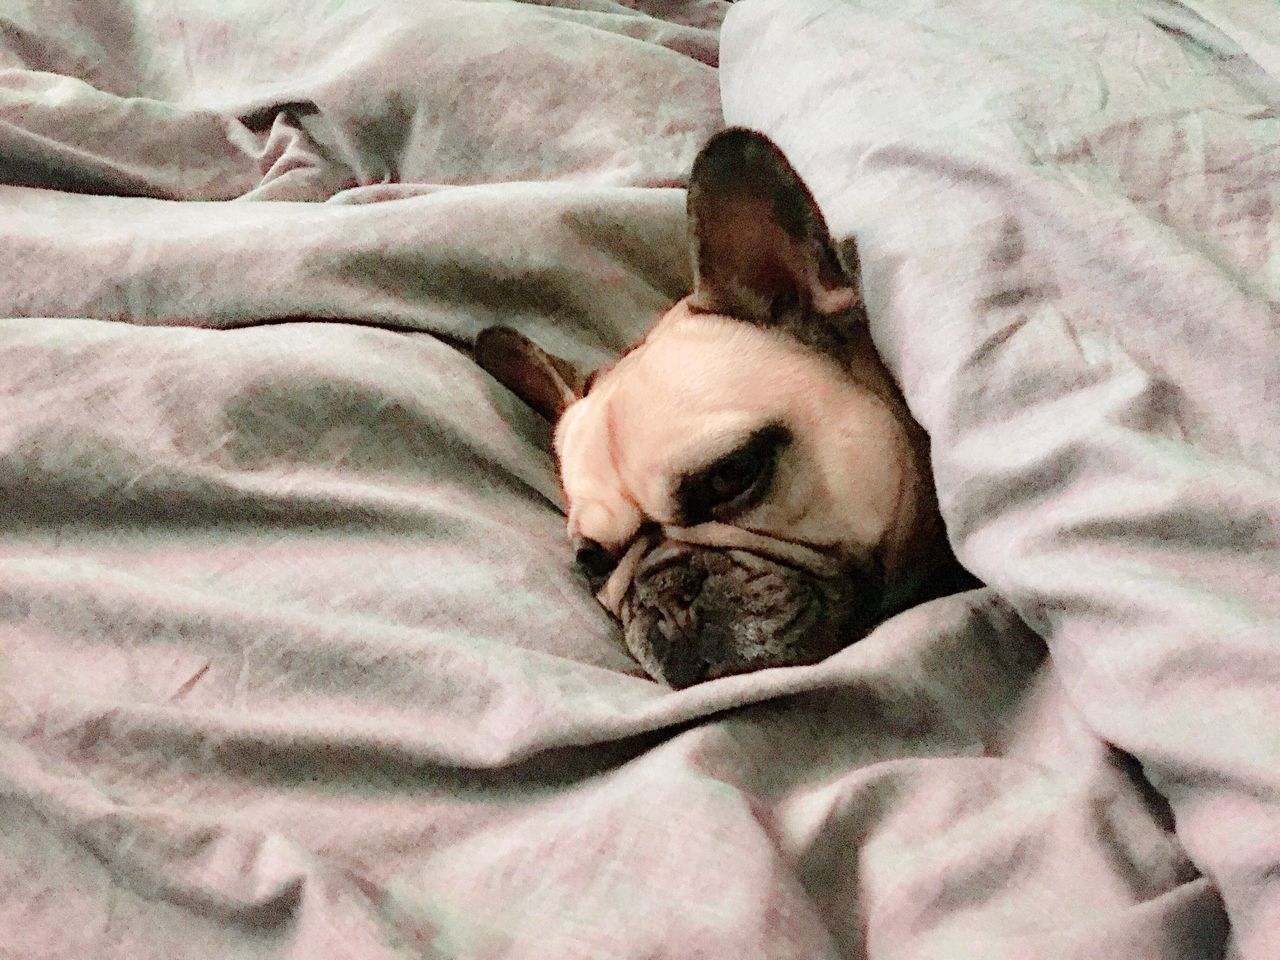 Spoiled Cosily Hidden Don't Disturb Me Bed Relaxation Lying Down Sleeping Sheet Pets Blanket Dog Home Interior Close-up Domestic Animals Mammal Animal Themes Animals Dogs Of EyeEm One Animal French Bulldog Bulldog Frenchie